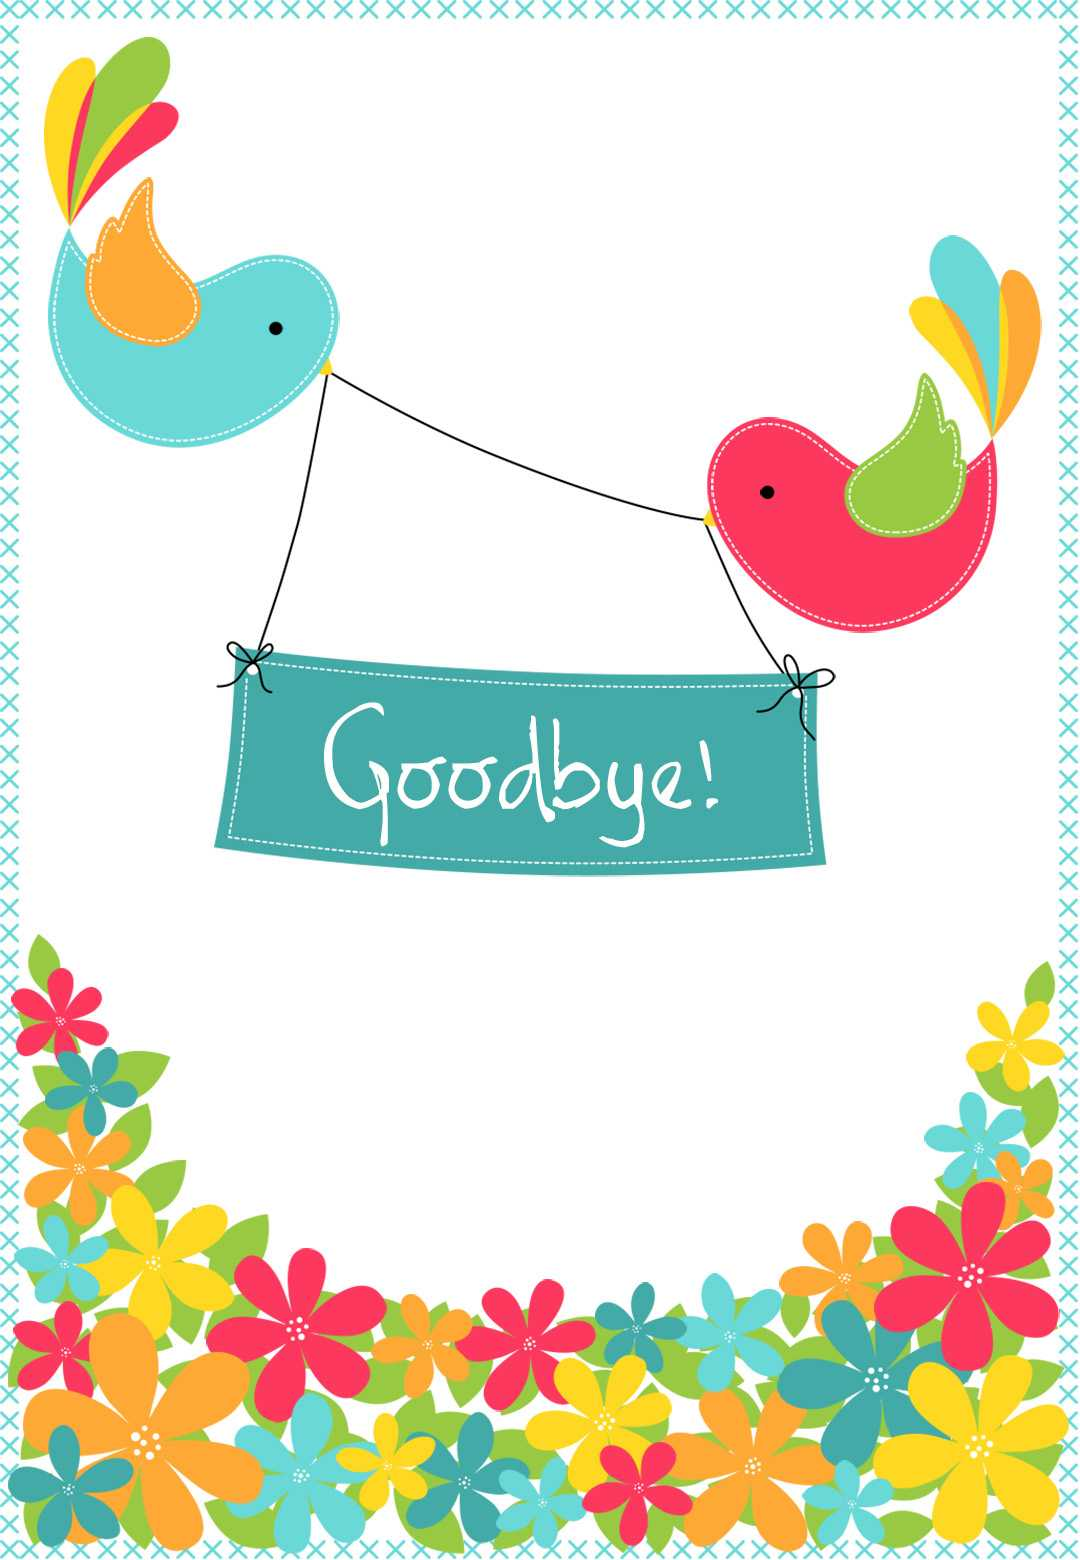 Goodbye From Your Colleagues - Good Luck Card (Free Inside Good Luck Card Template